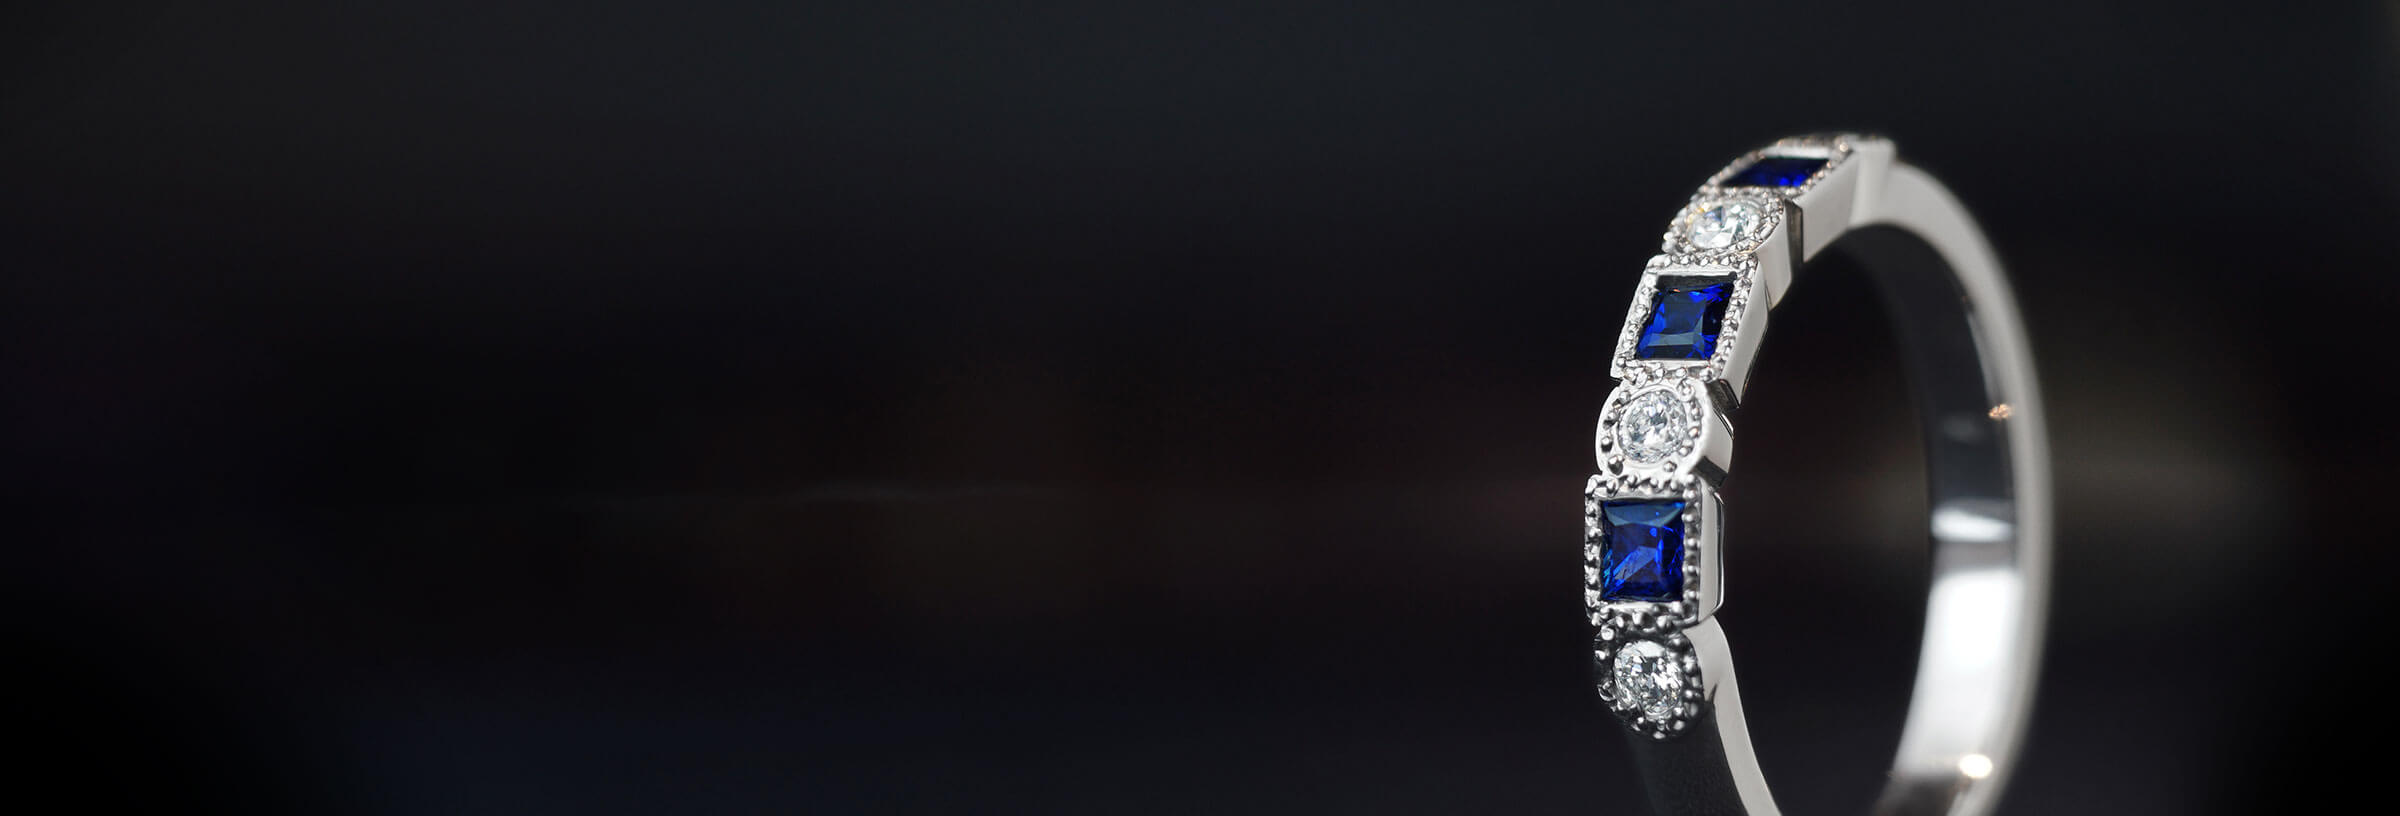 https://images.hkjewellery.co.uk/media/2868/sapphire-diamond-wedding-ring.jpg